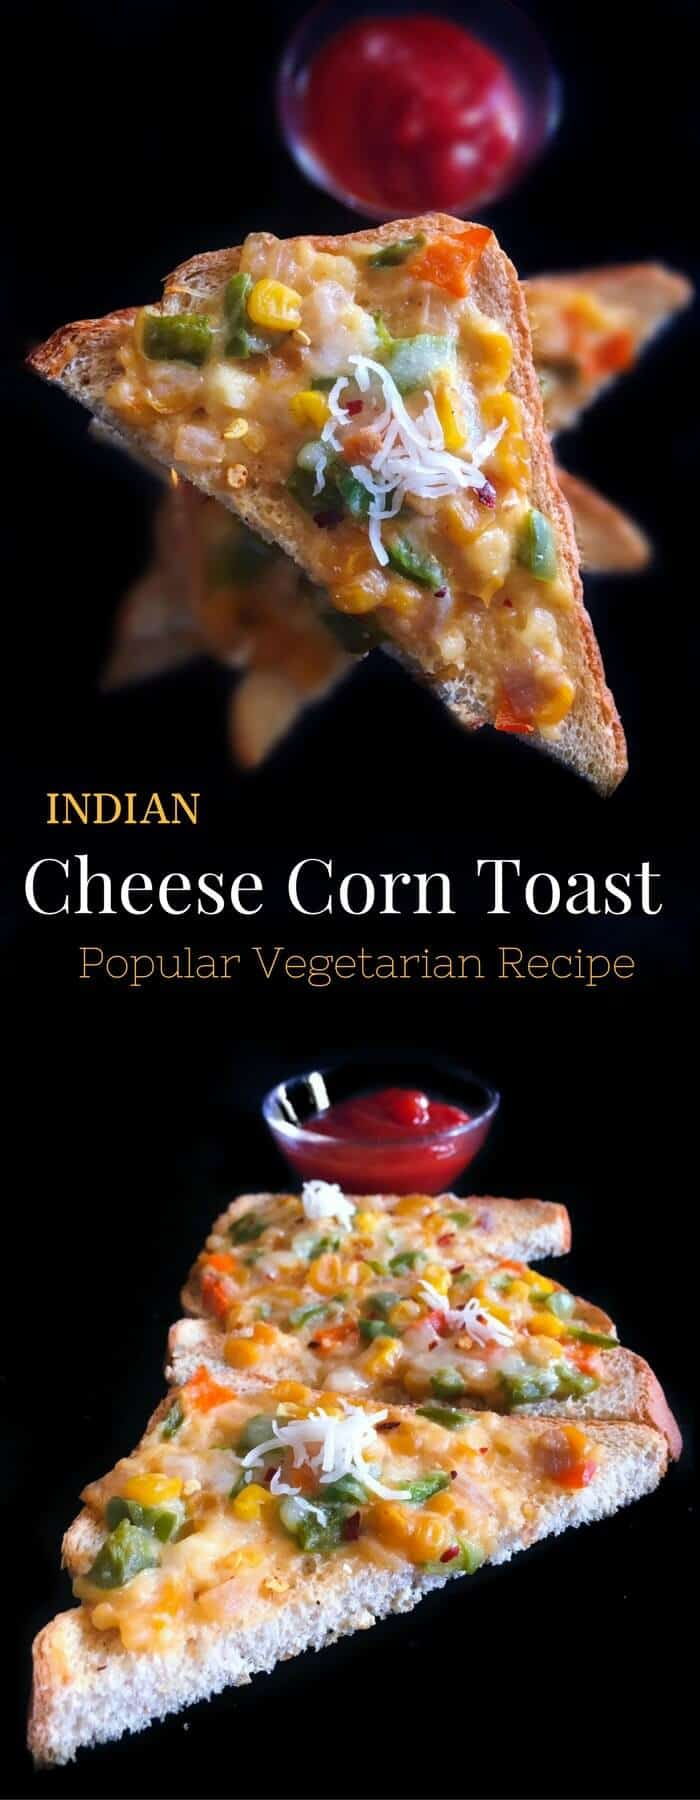 Indian Cheese Corn Toast - Popular Vegetarian Recipe : #sundaysupper #corn #cheese #toast #backtoschool #snack